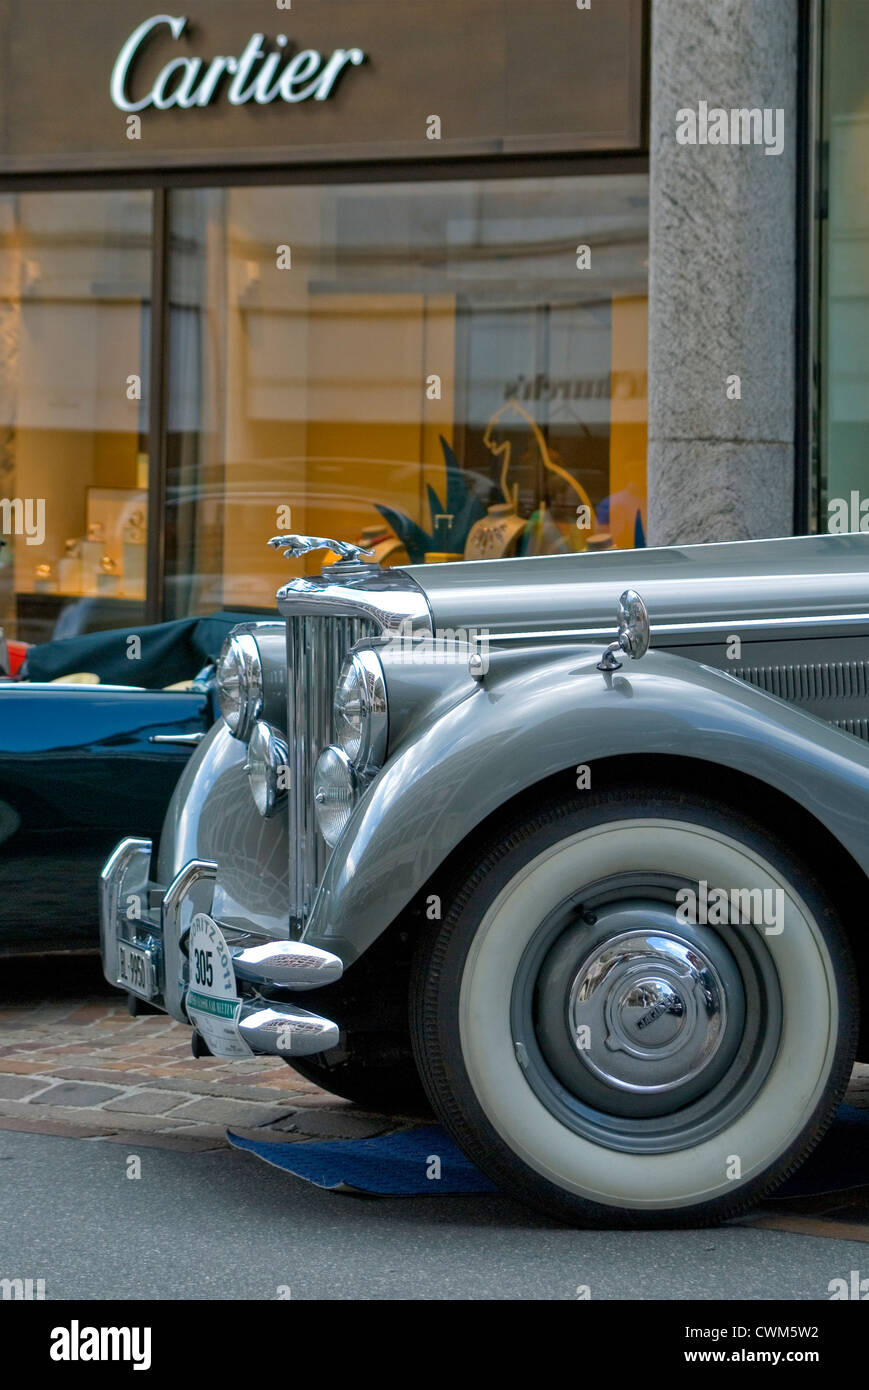 Jaguar vintage car in front of Cartier Shop during the British Classic Car Meeting 2011, St.Moritz, Switzerland - Stock Image